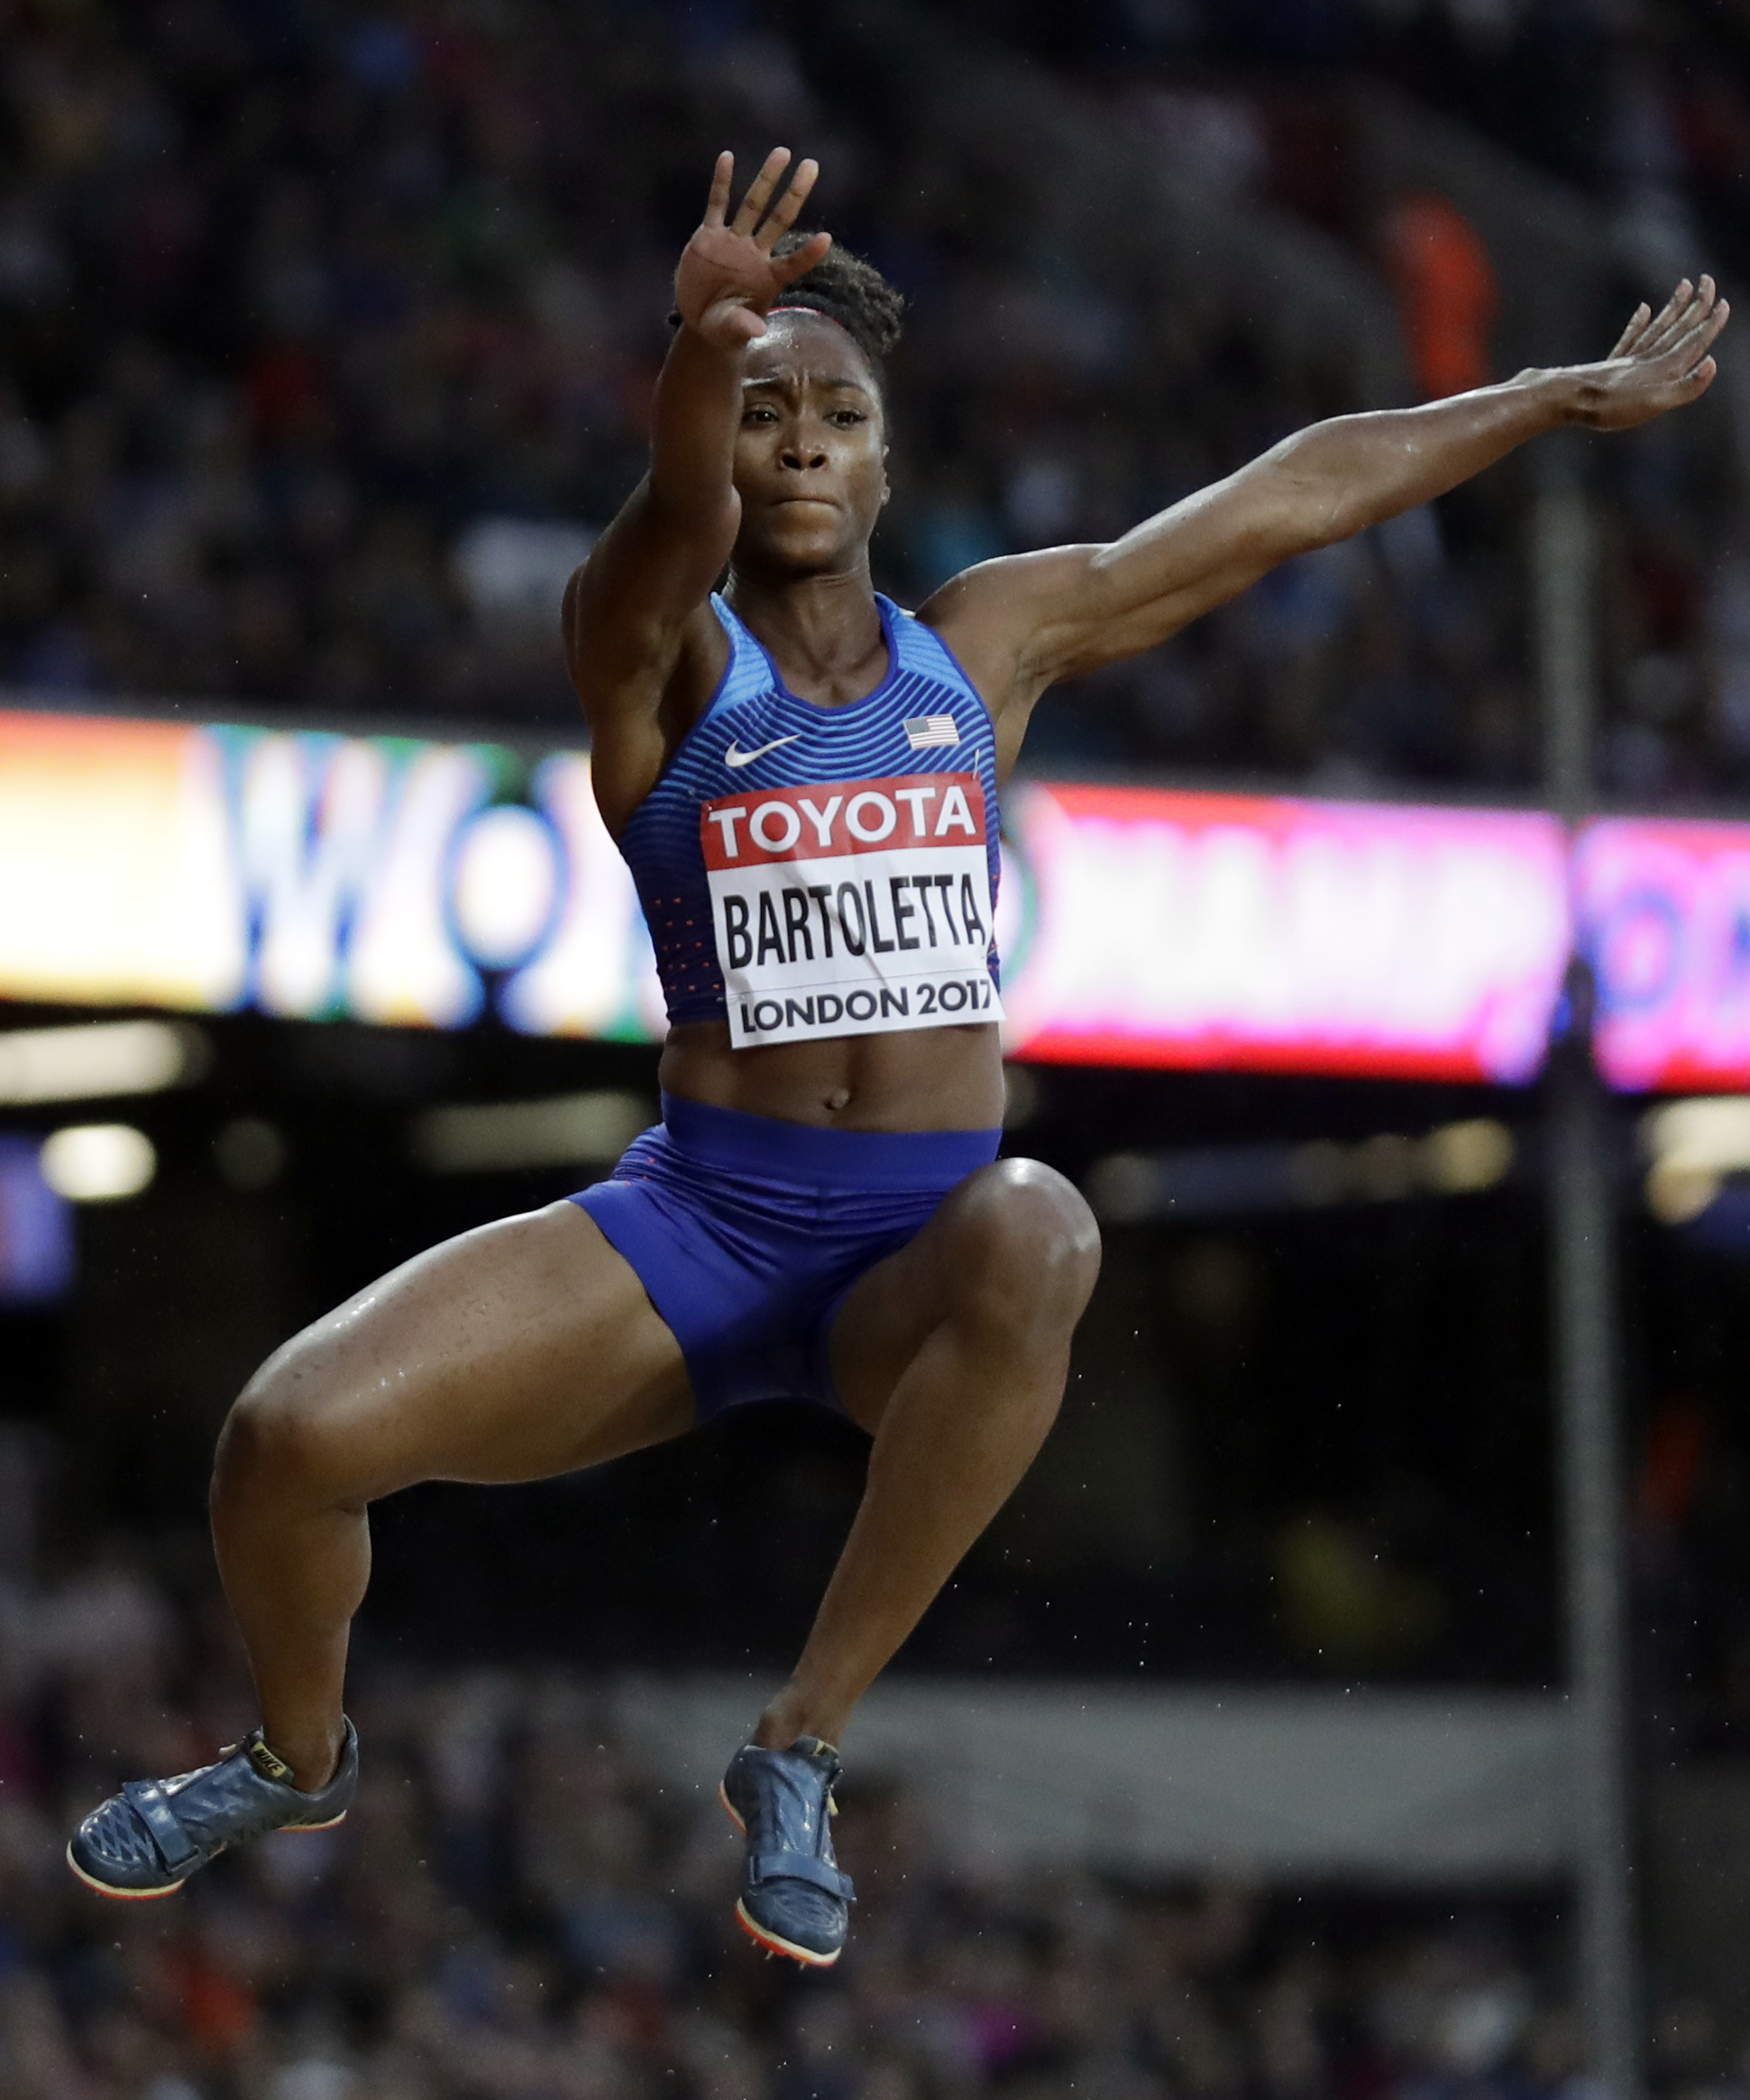 United States' Tianna Bartoletta makes an attempt in the women's long jump qualification during the World Athletics Championships in London Wednesday, Aug. 9, 2017. (AP Photo/Matt Dunham)